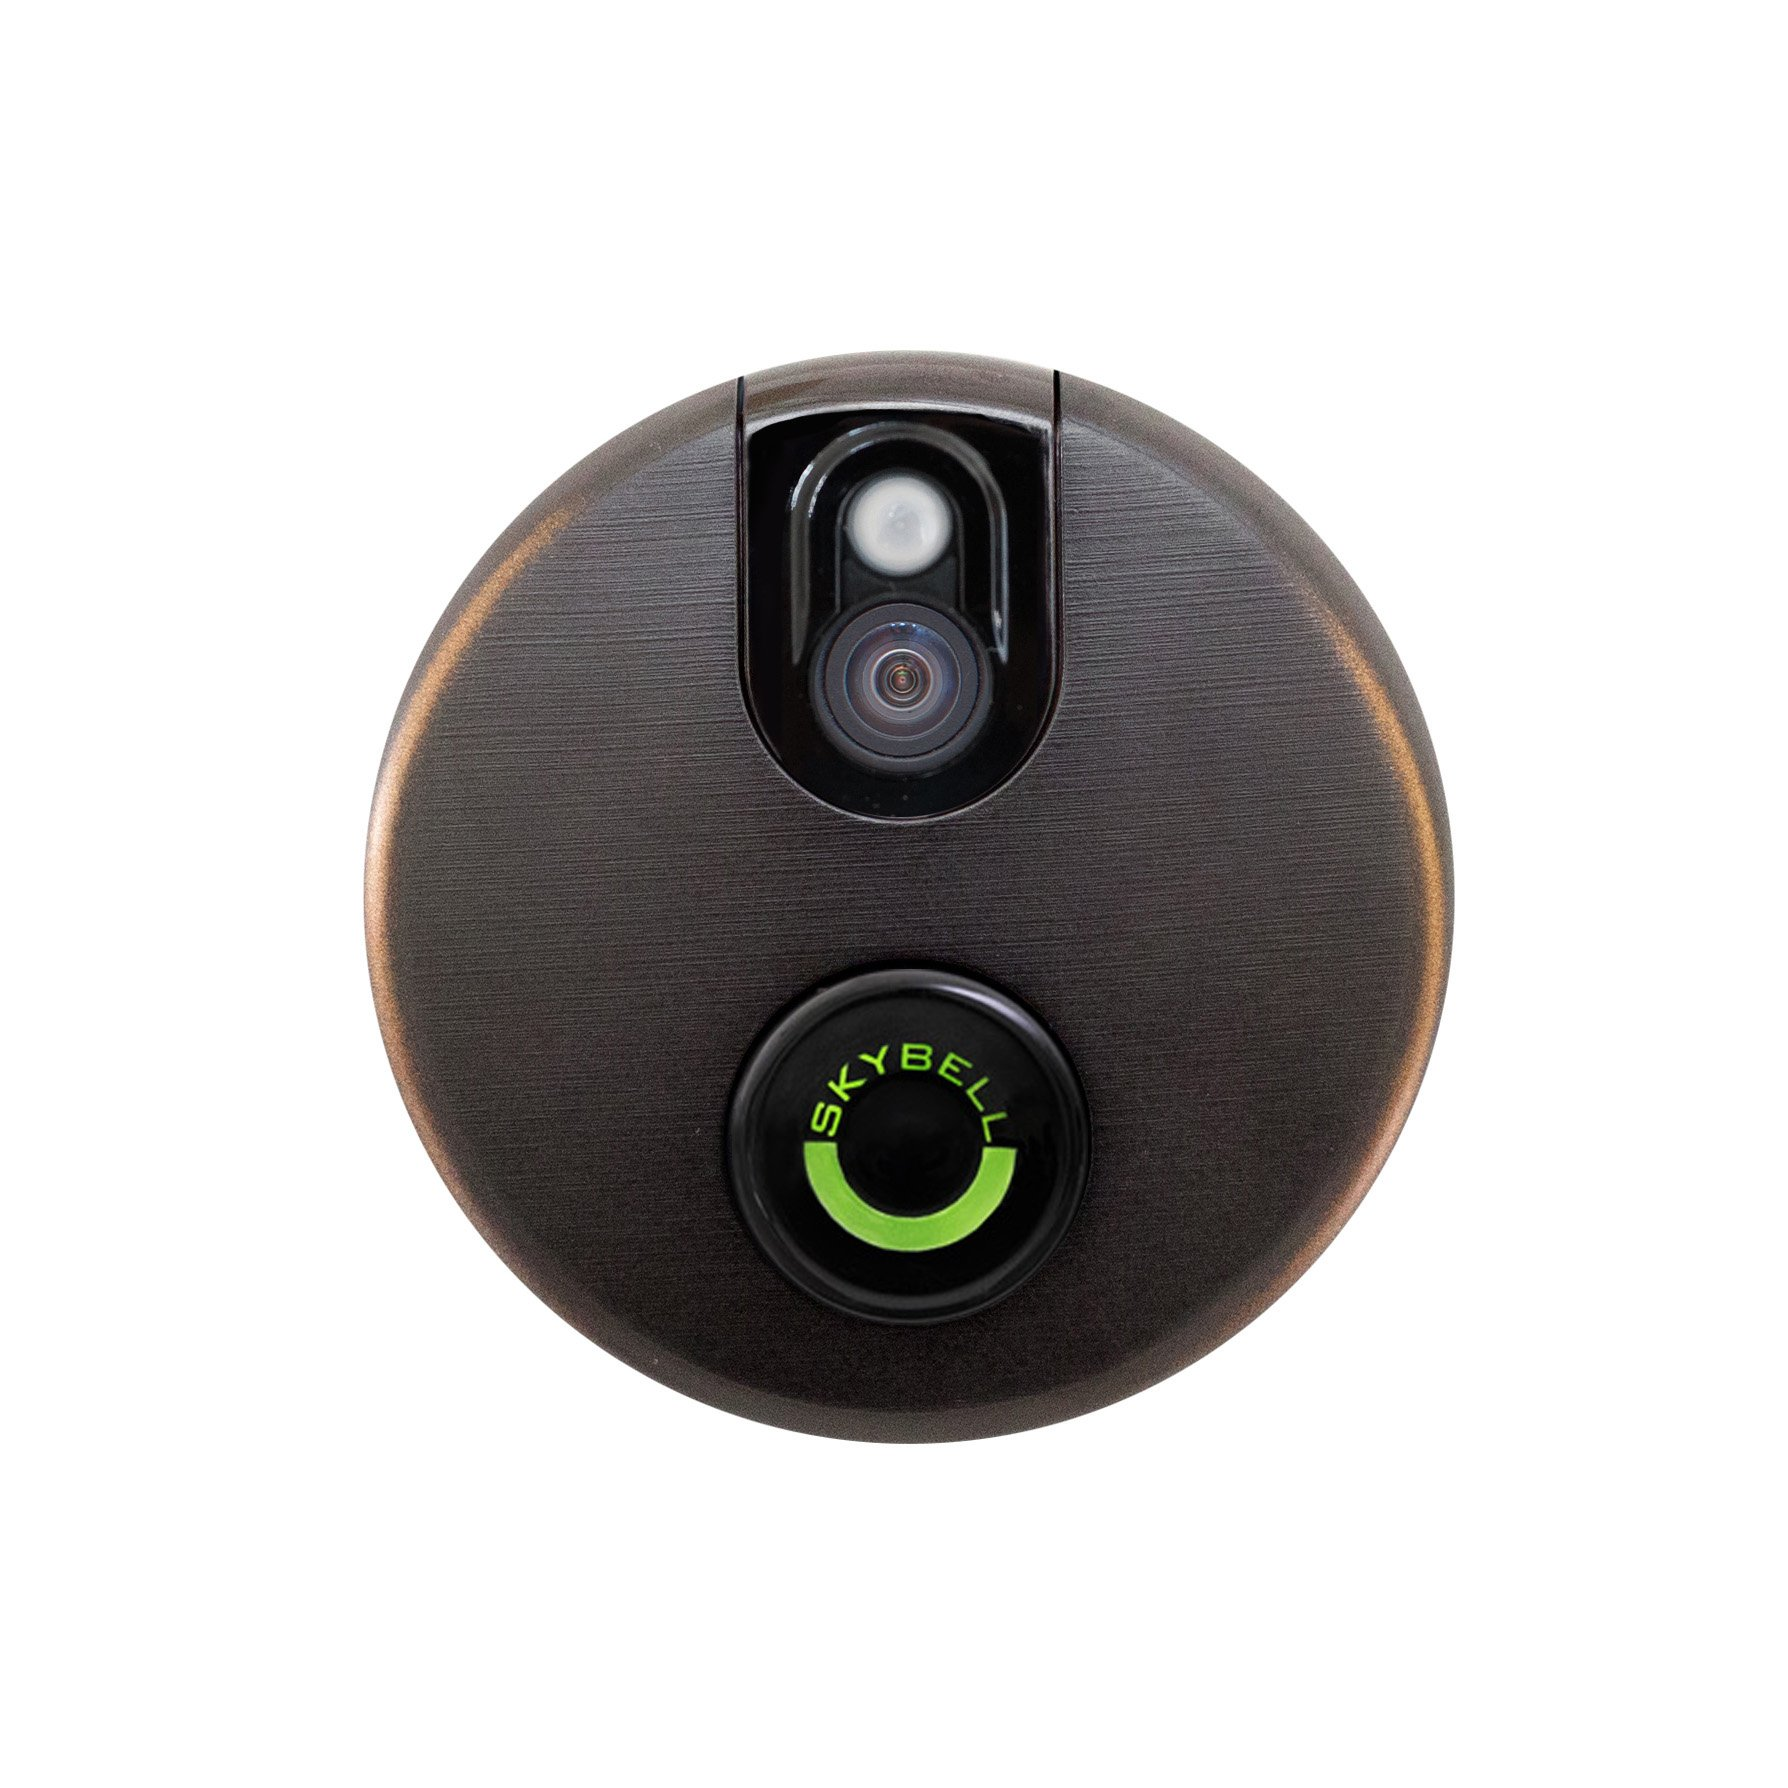 SkyBell Wi-Fi Video Doorbell Version 2.0 Classic (BRONZE) by SkyBell